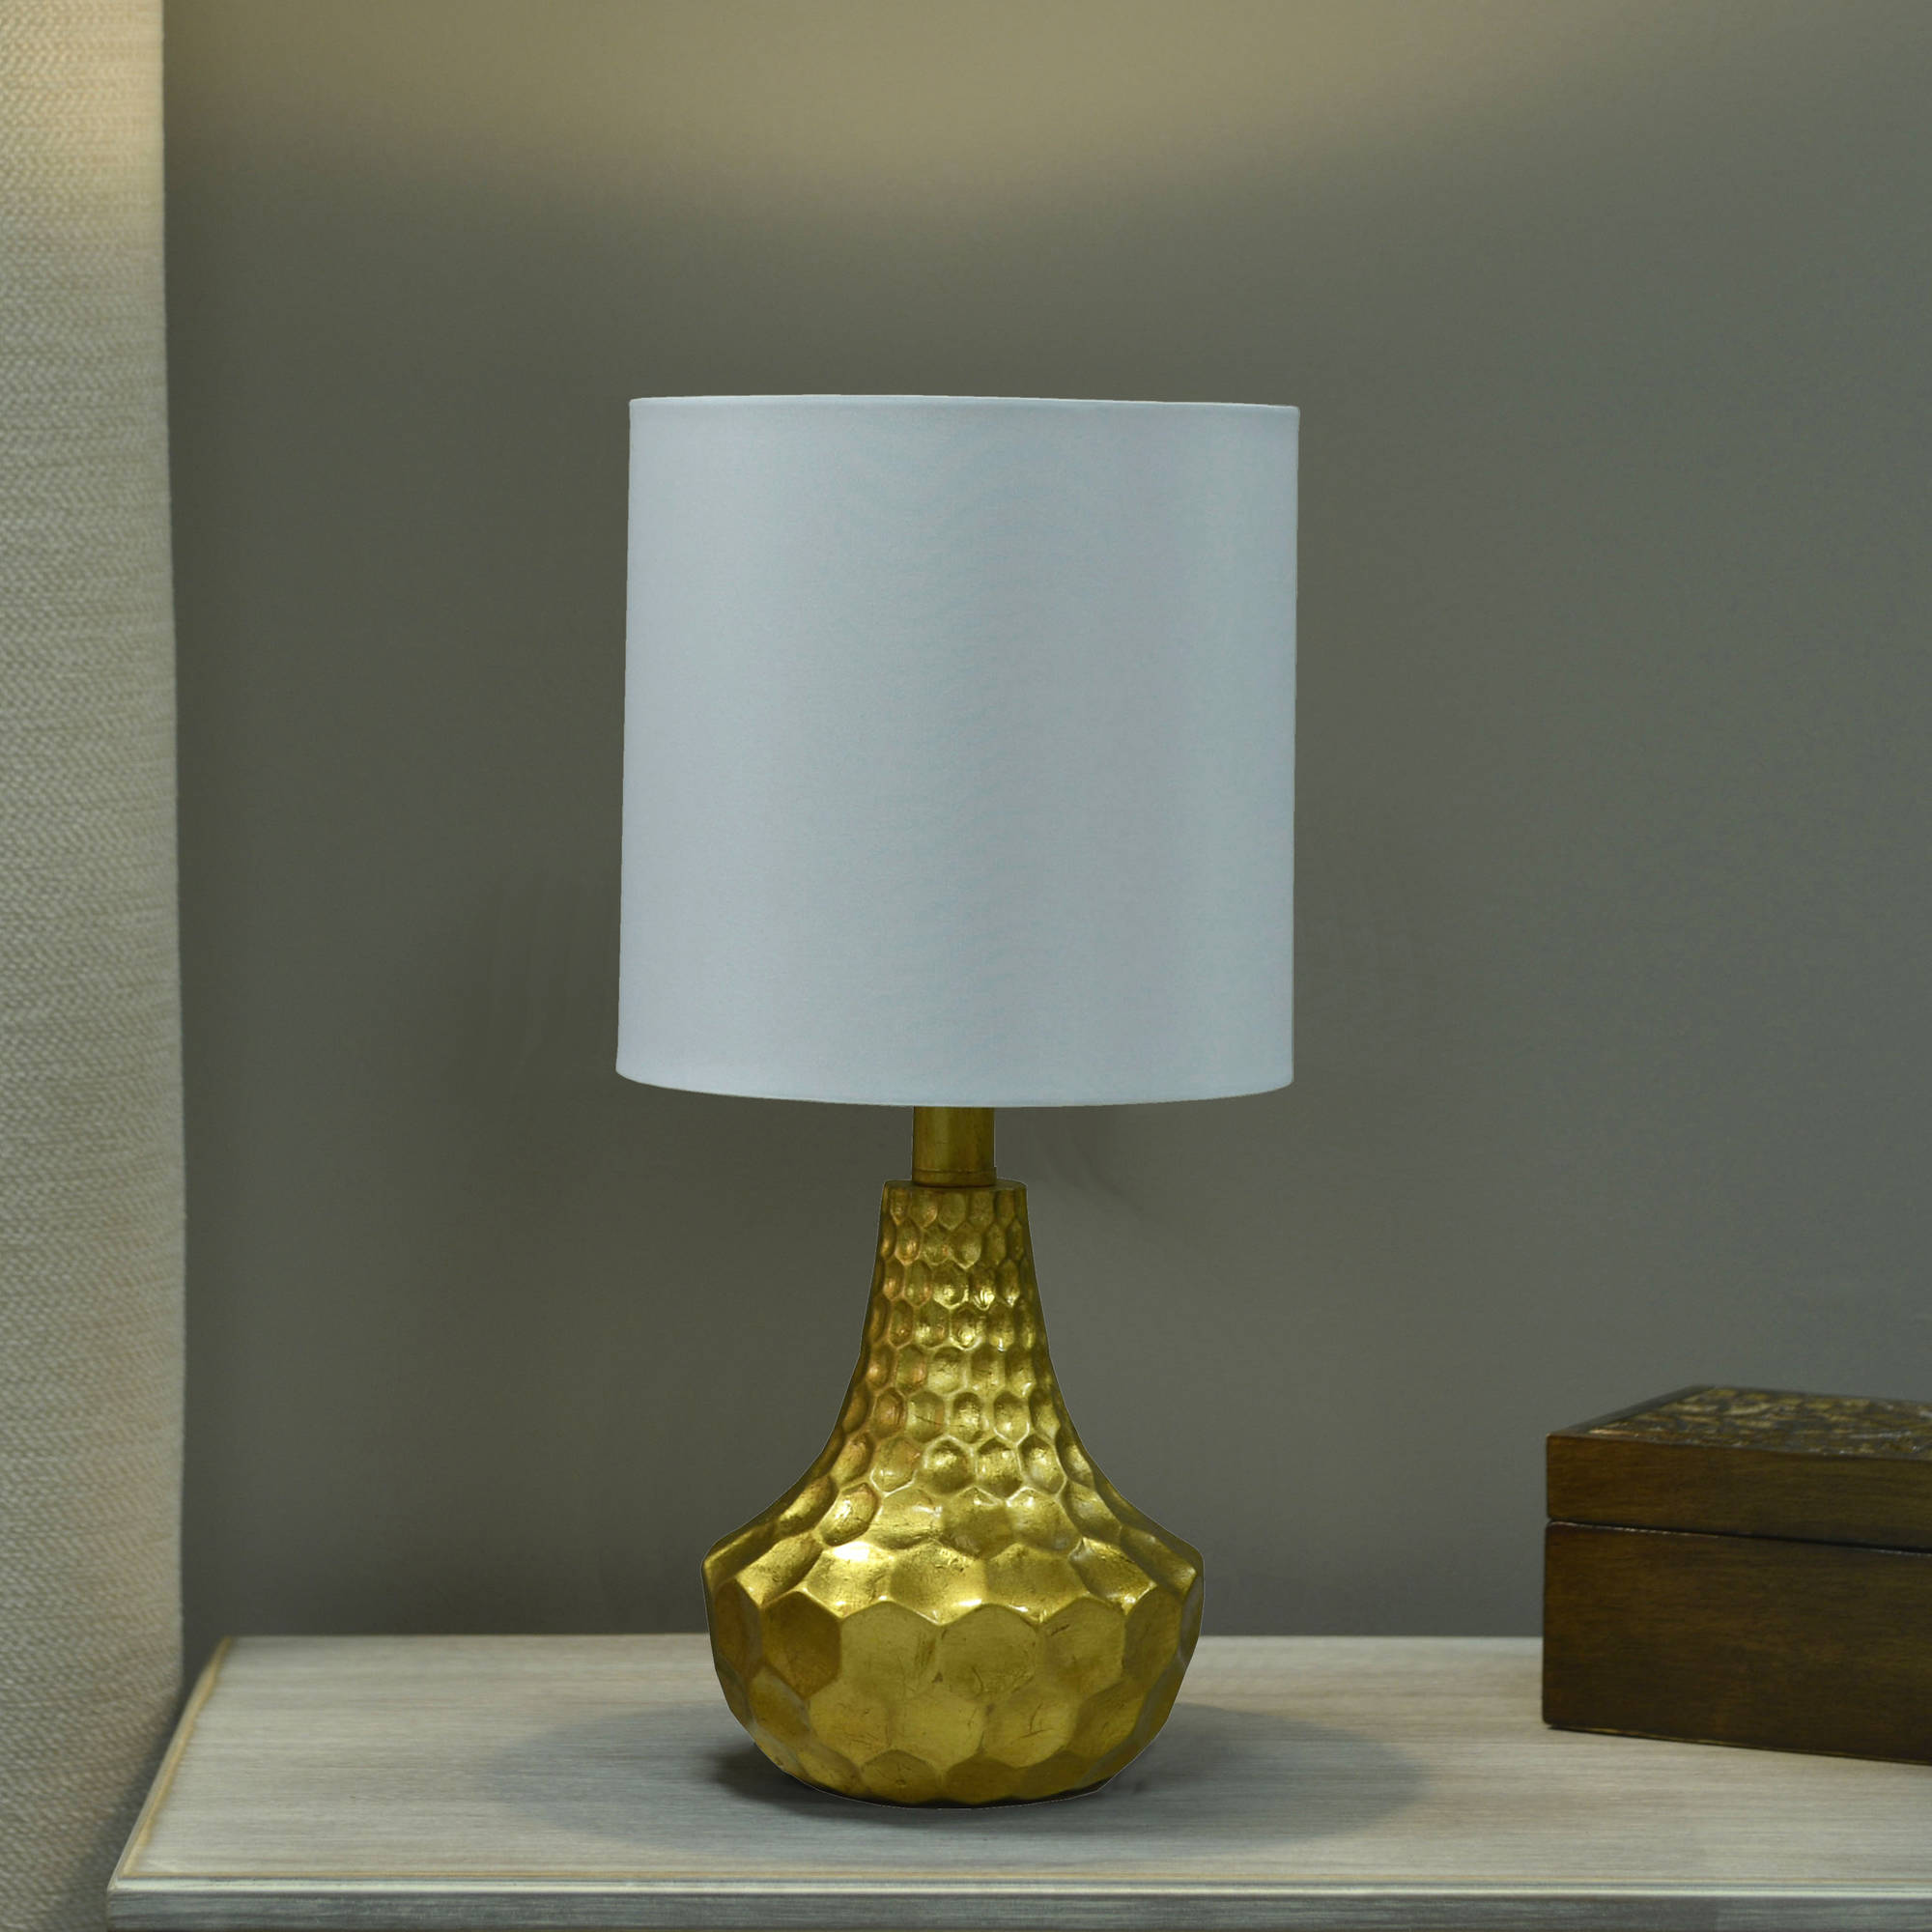 Better Homes and Gardens Gold Faceted Table Lamp with Linen Shade by JIMCO LAMP CO.